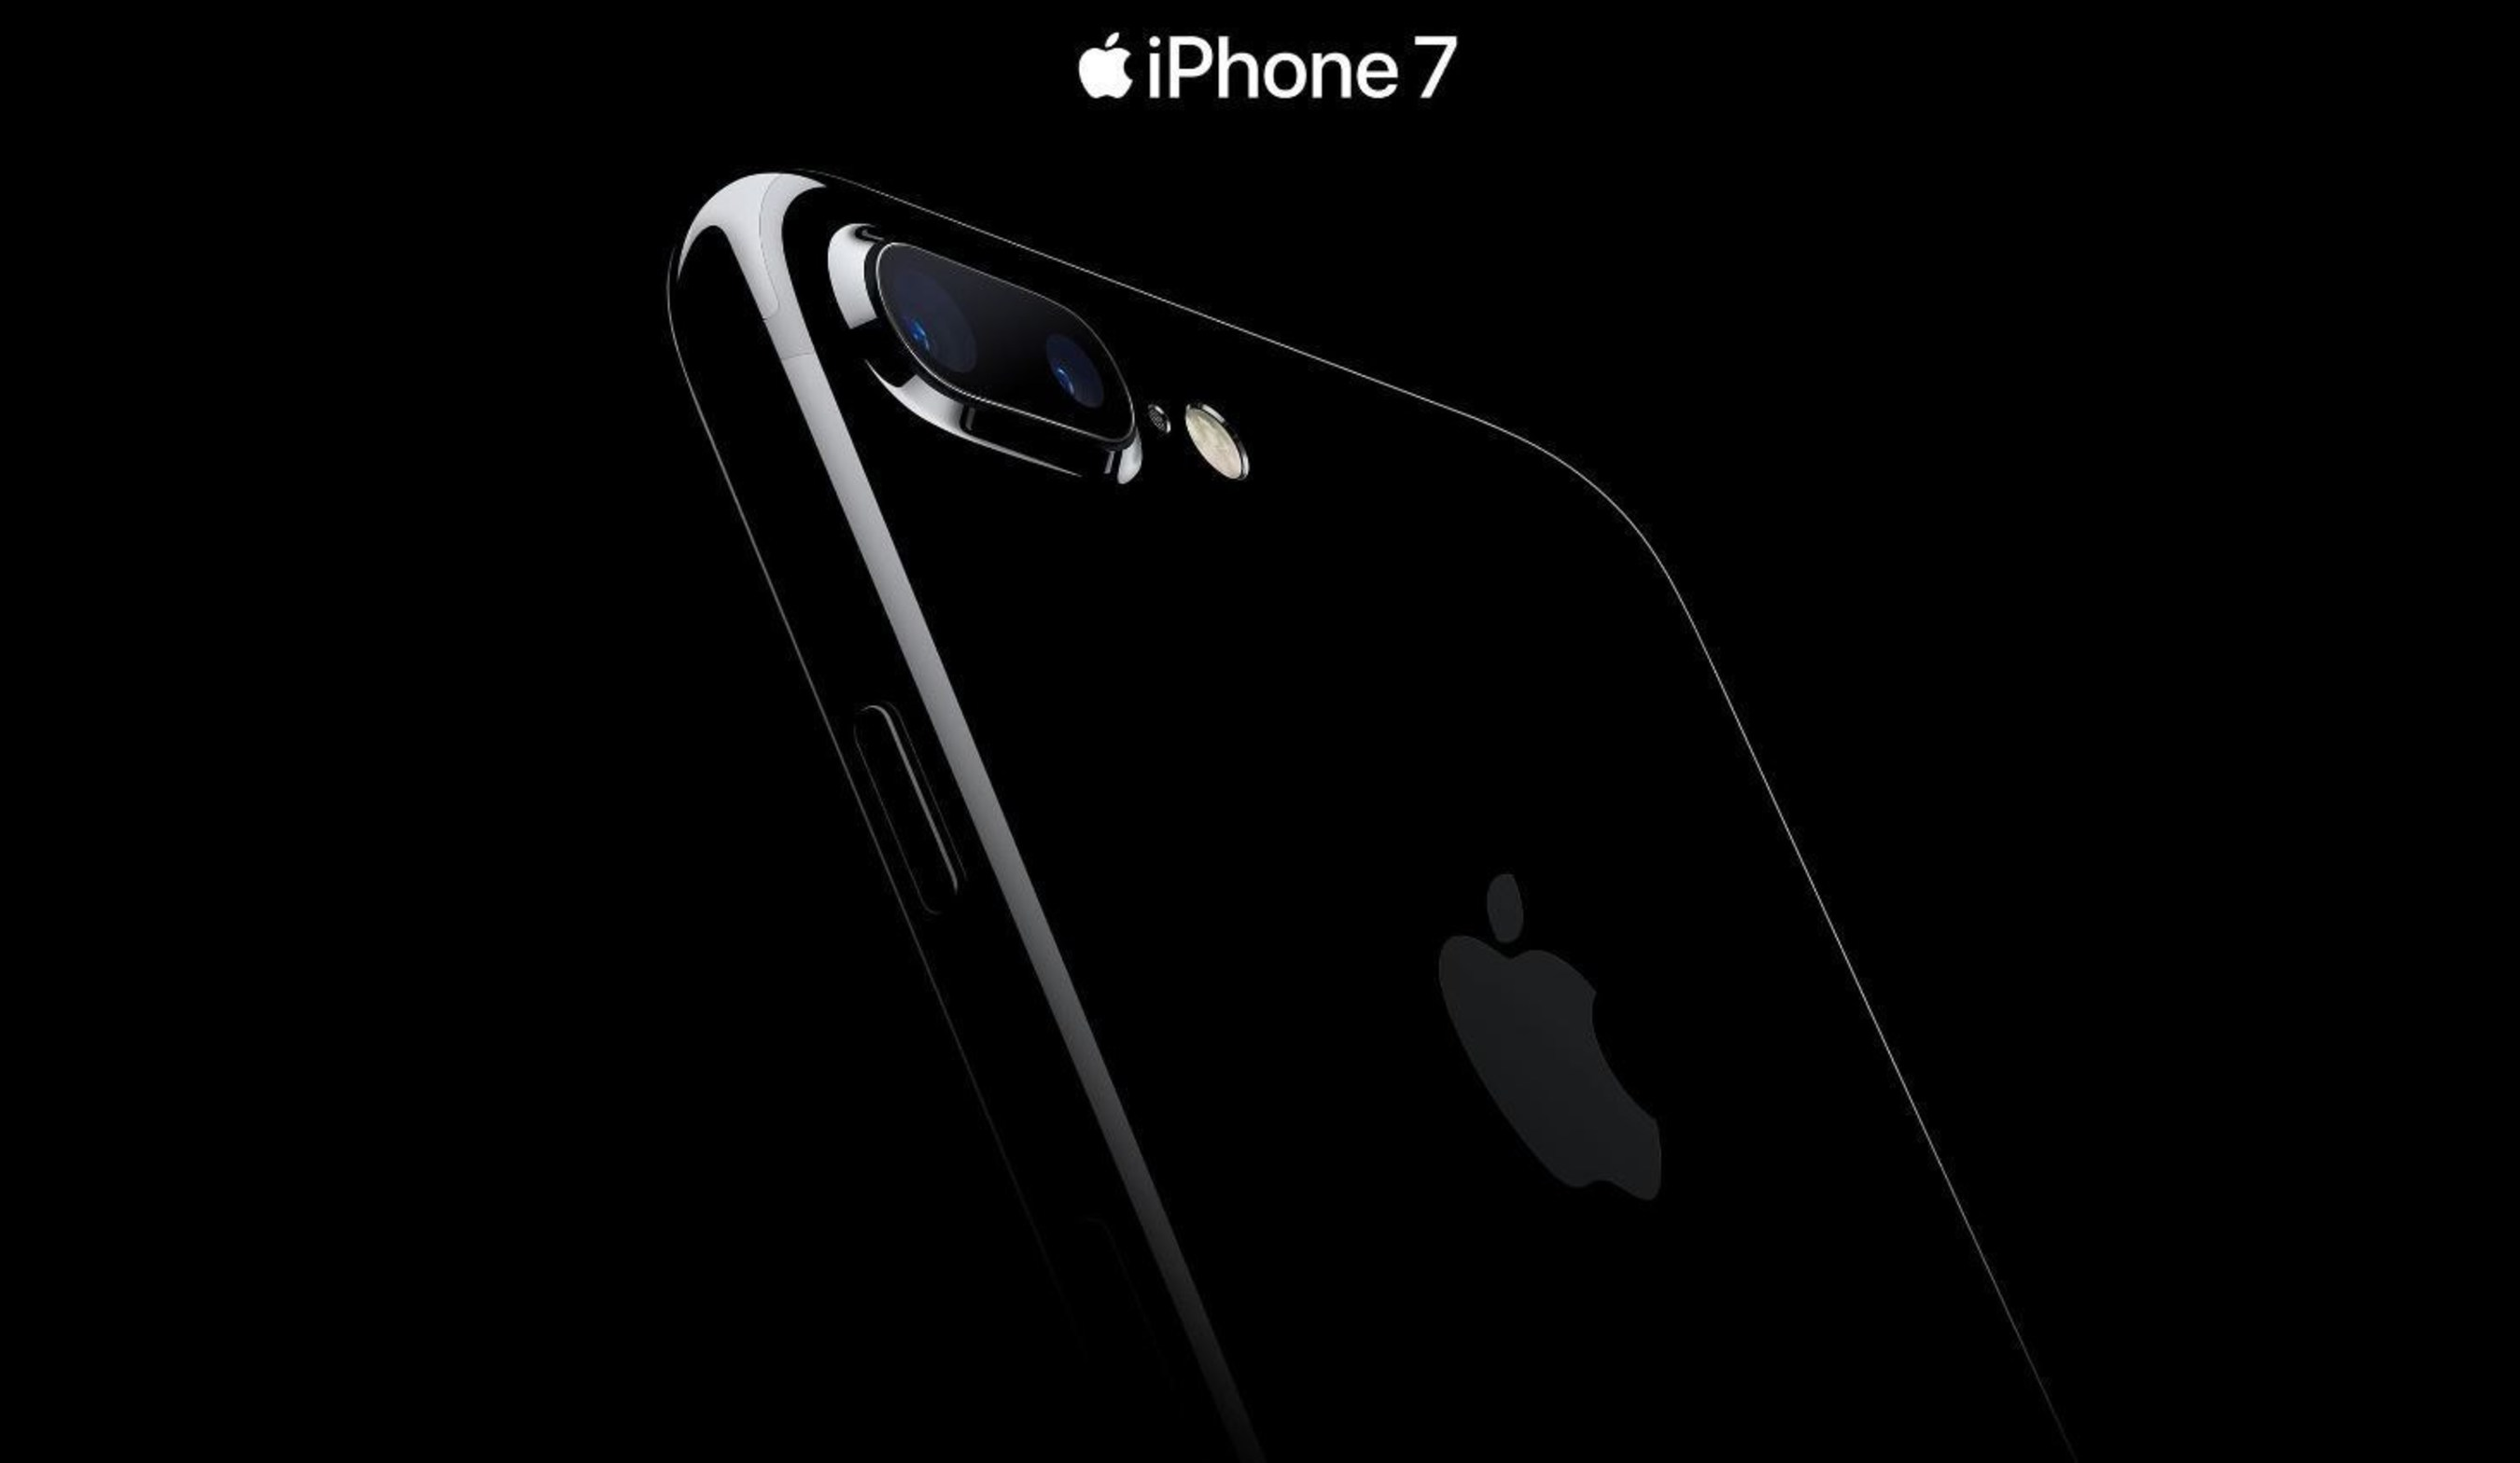 C Spire to offer iPhone 7, iPhone 7 Plus, Apple Watch Series 2 and Apple Watch Series 1 on September 16